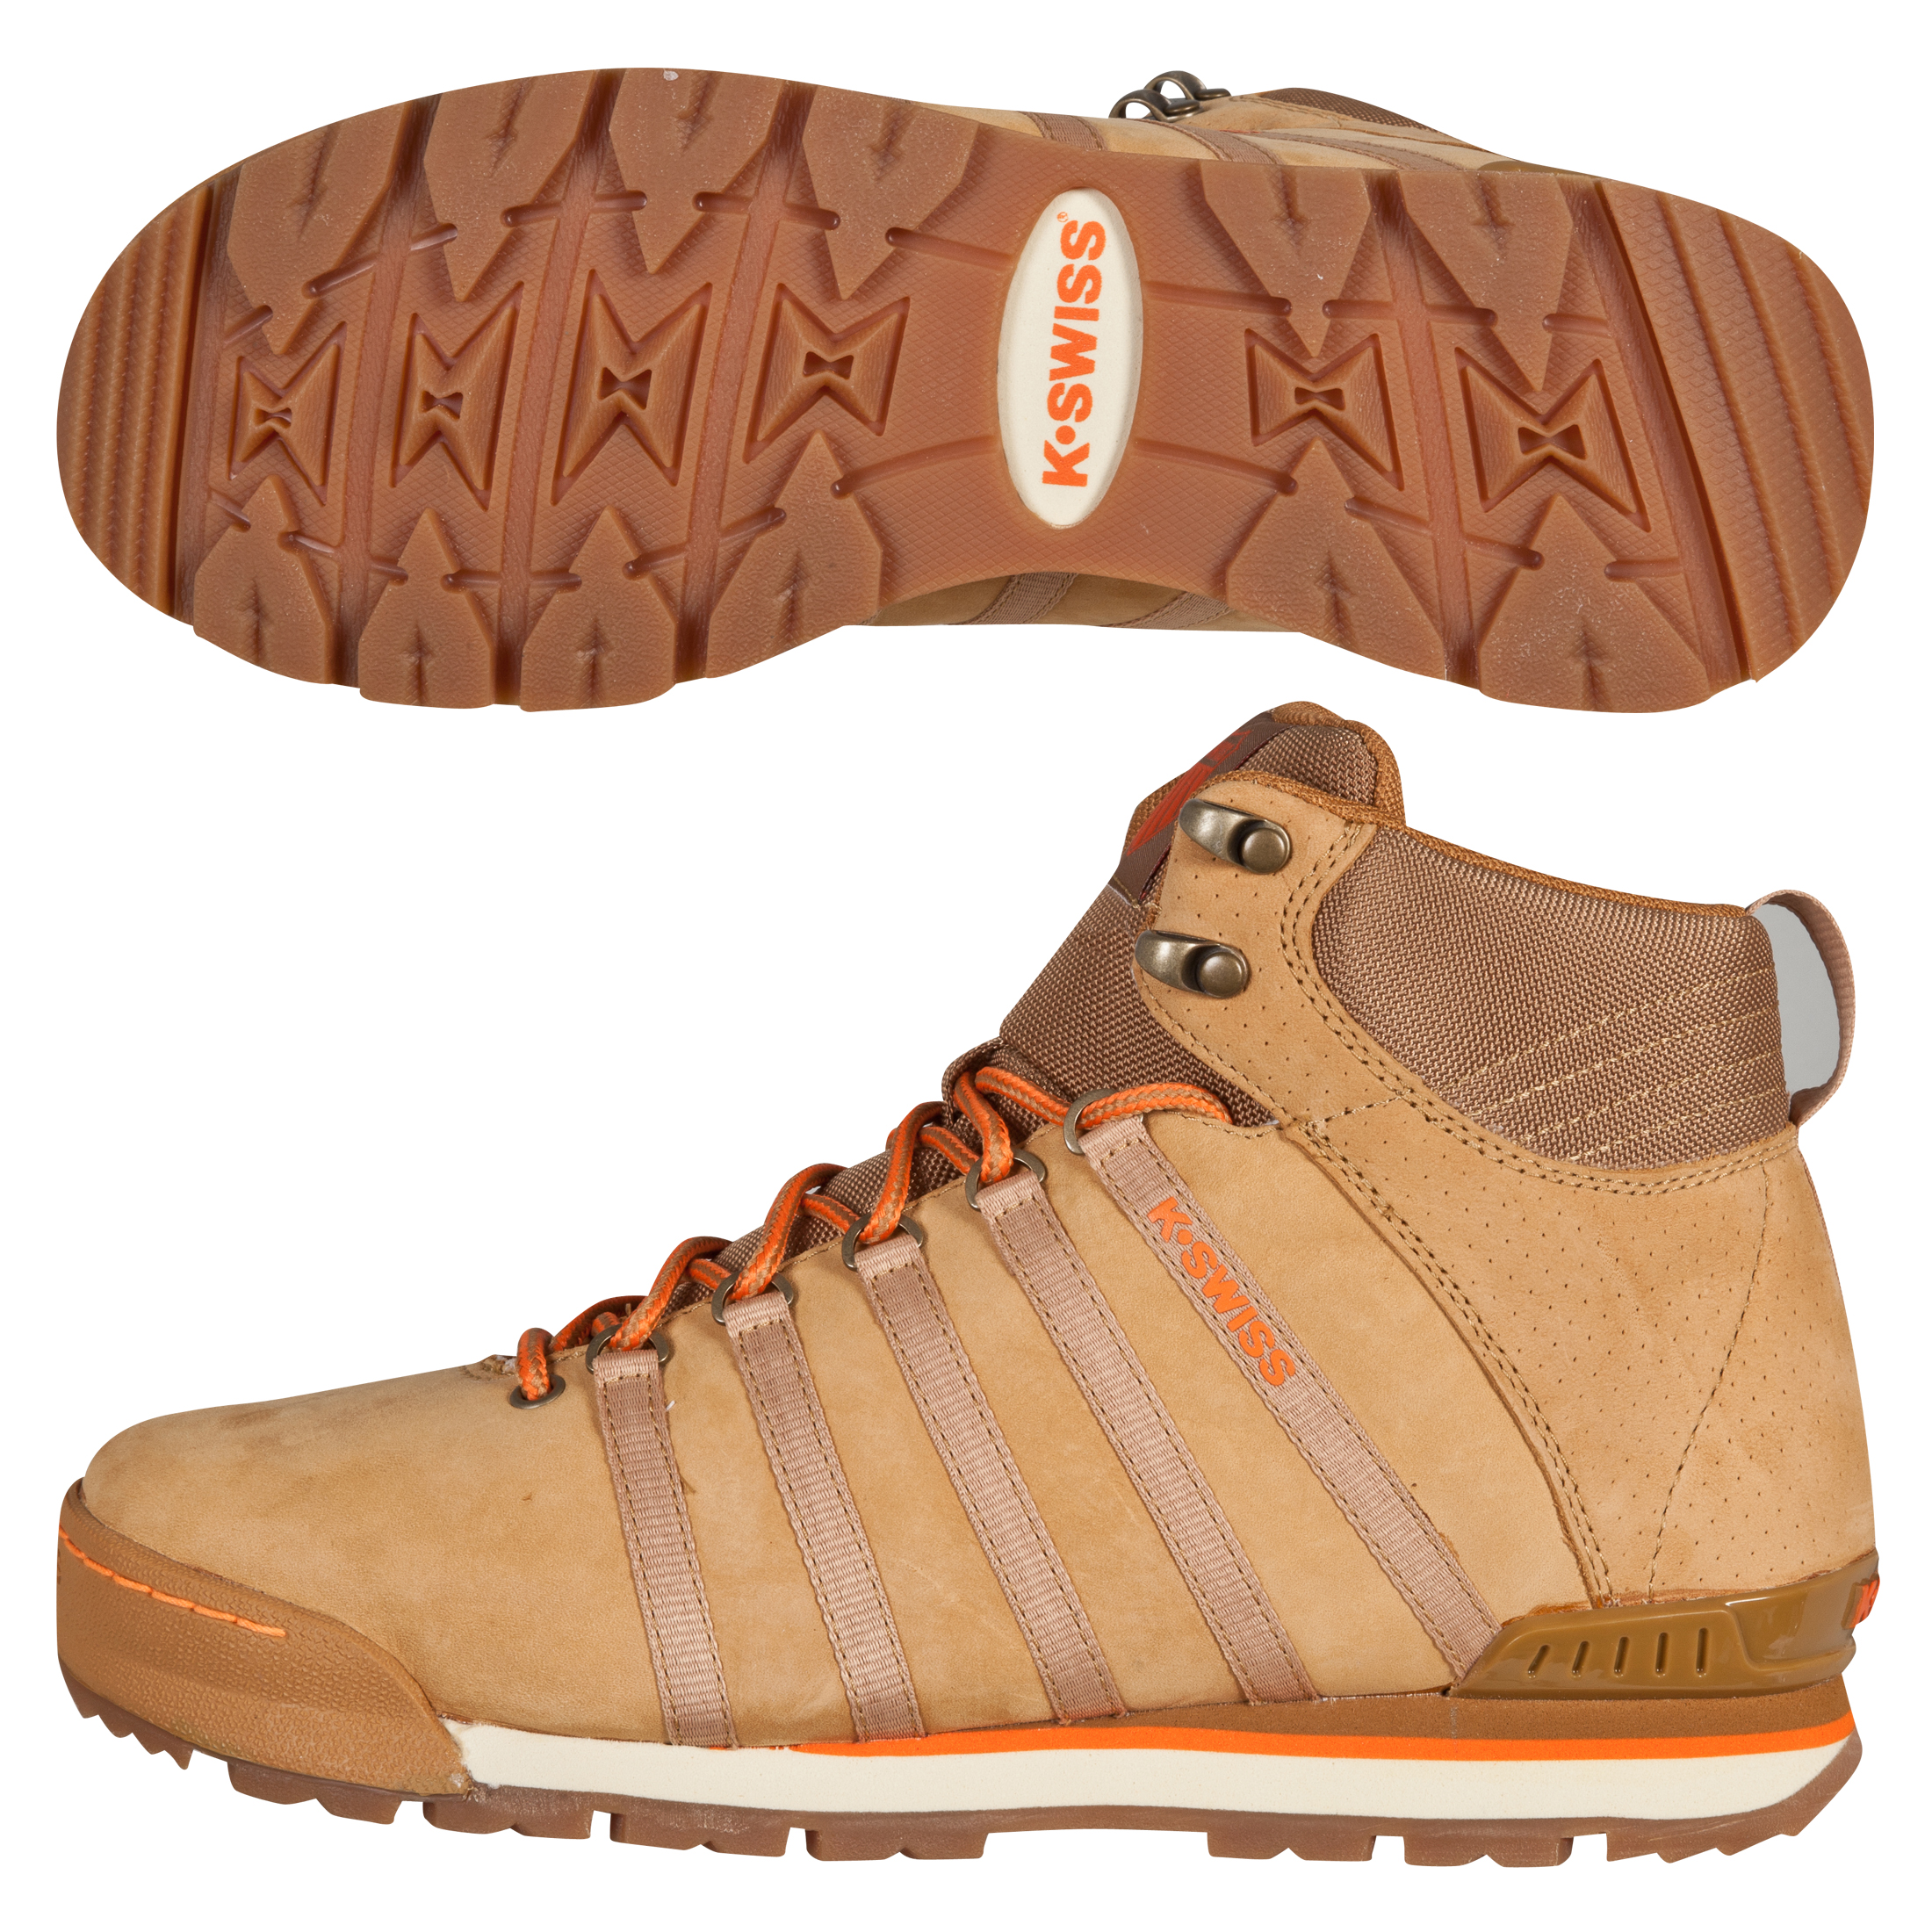 K Swiss K-Swiss Classic Hiker High Boots - Bone Brown/Bisque/Vibrant Orange/Dark Gum